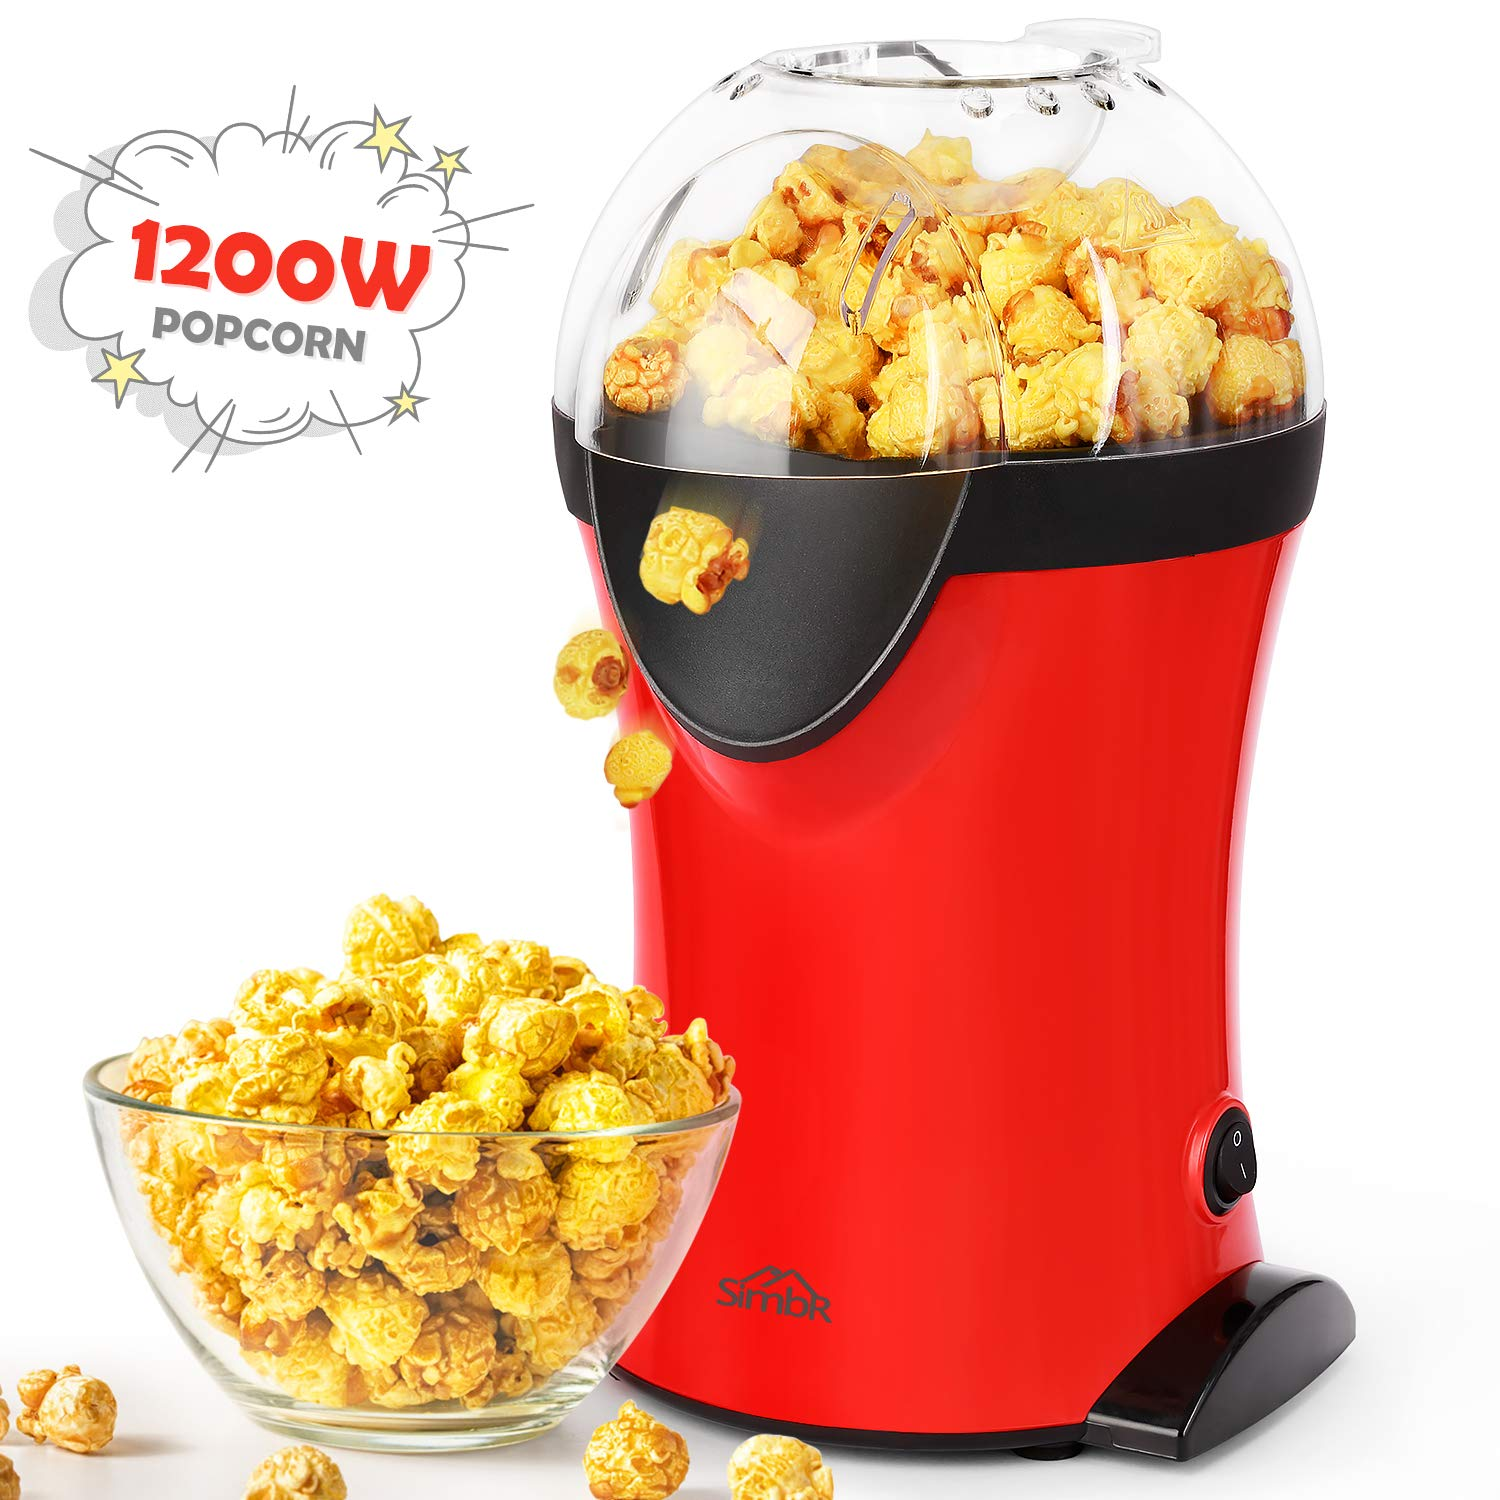 Popcorn Popper, SIMBR Hot Air Popcorn Maker with Measuring Spoon and Large Lid for Serving Bowl and Convenient Storage, 1200W Electric Popcorn Machine, No Oil Need by SIMBR